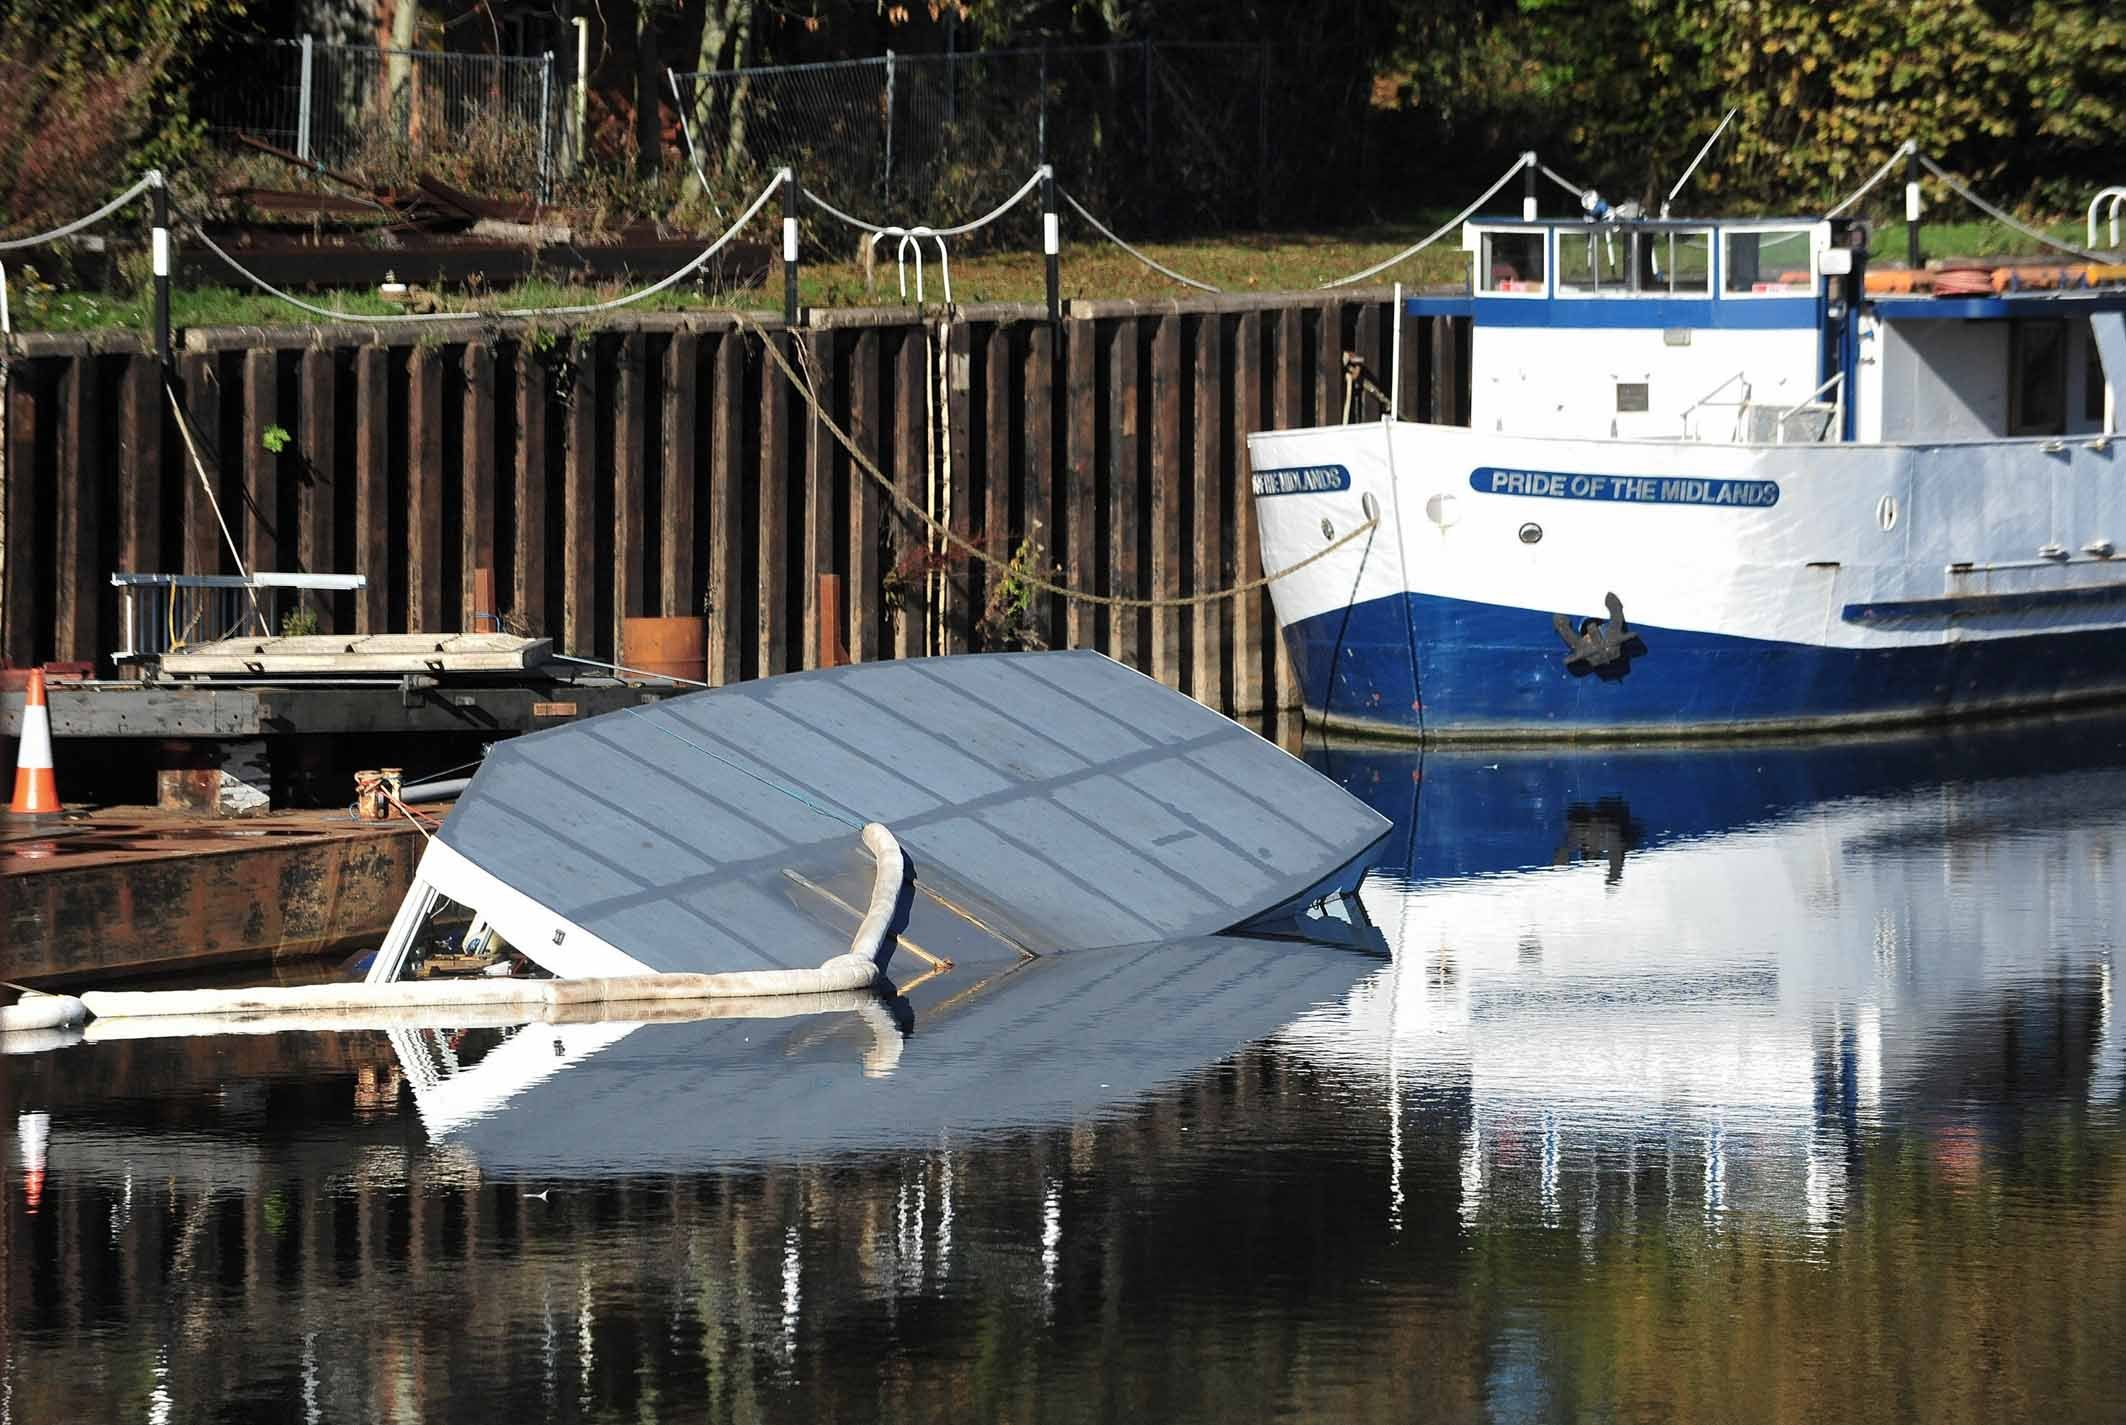 Sunken boat remains in Diglis Dock as investigations continue